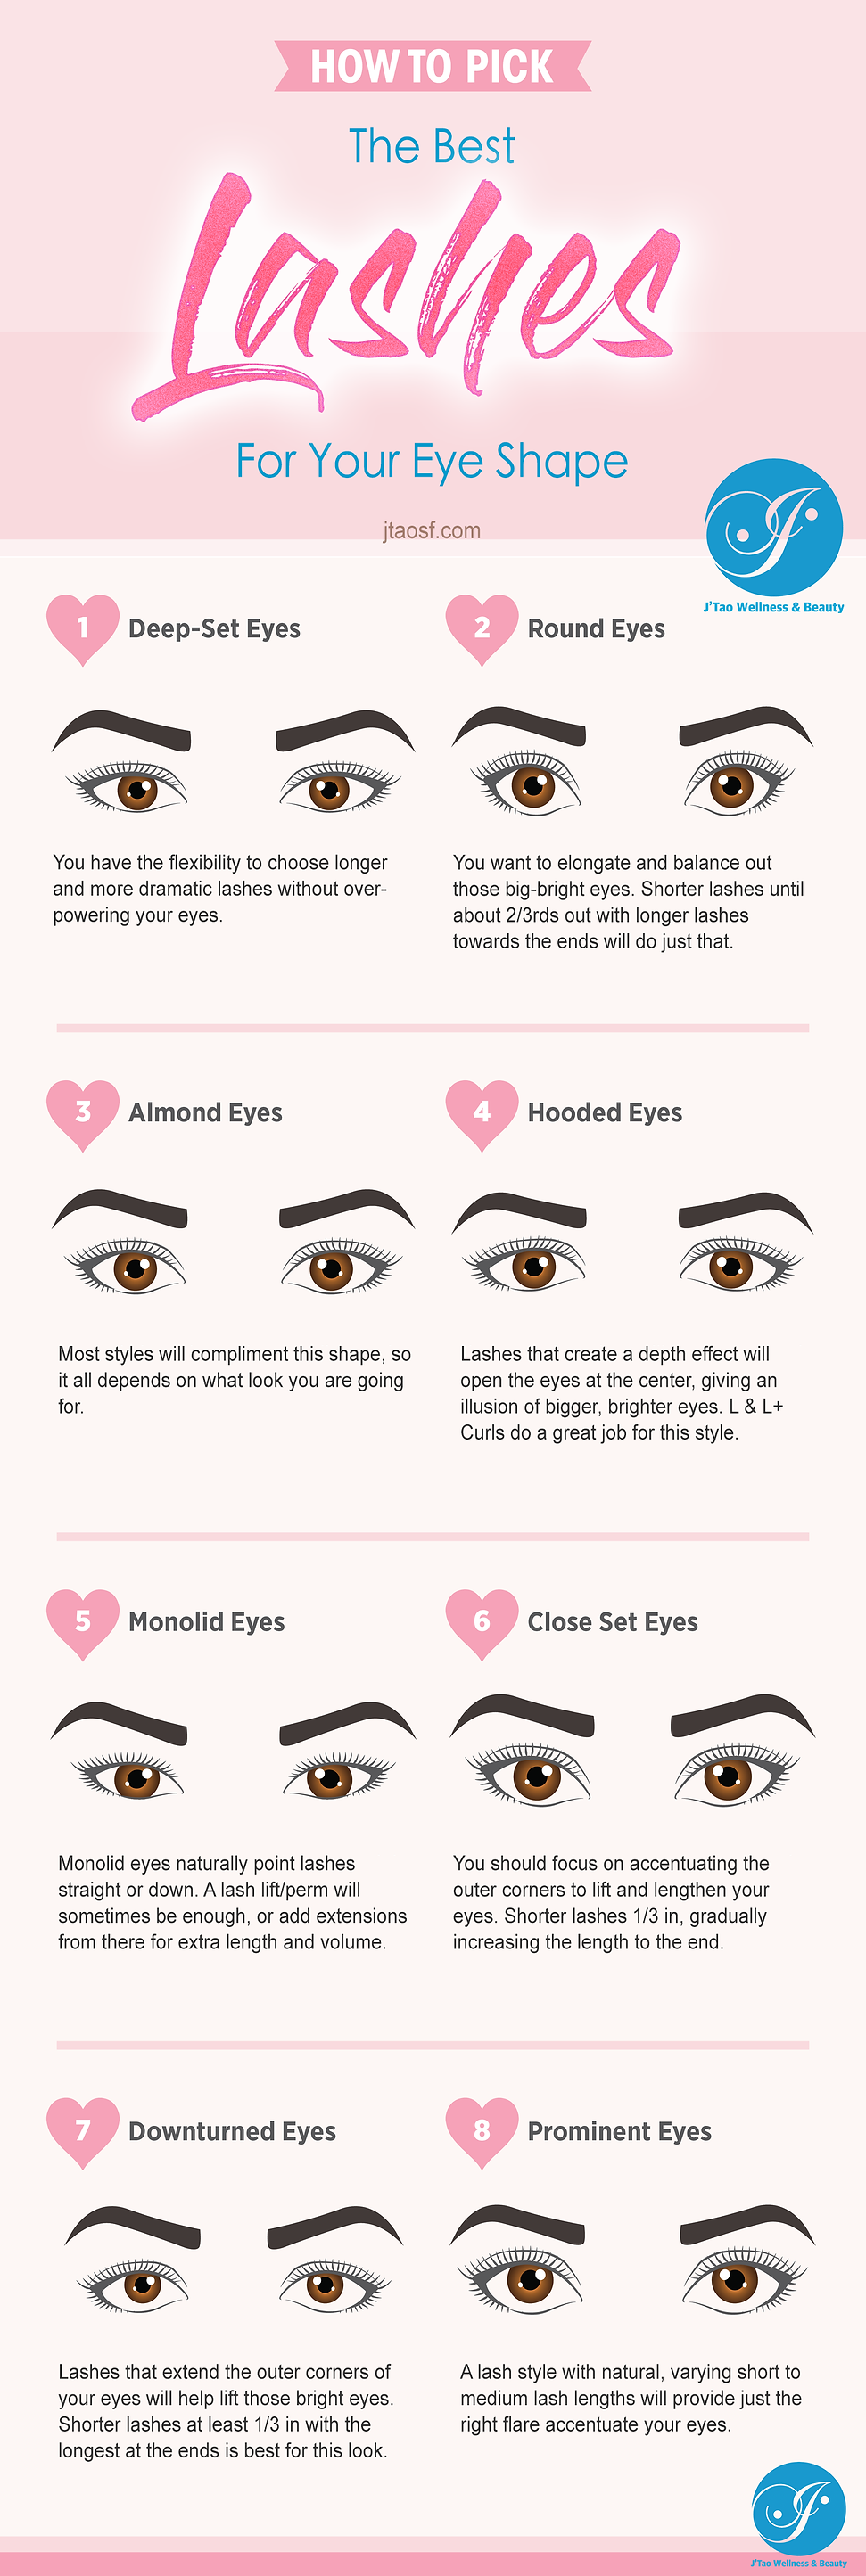 Jtao_Best_Lashes_for_Eye_Shapes.png